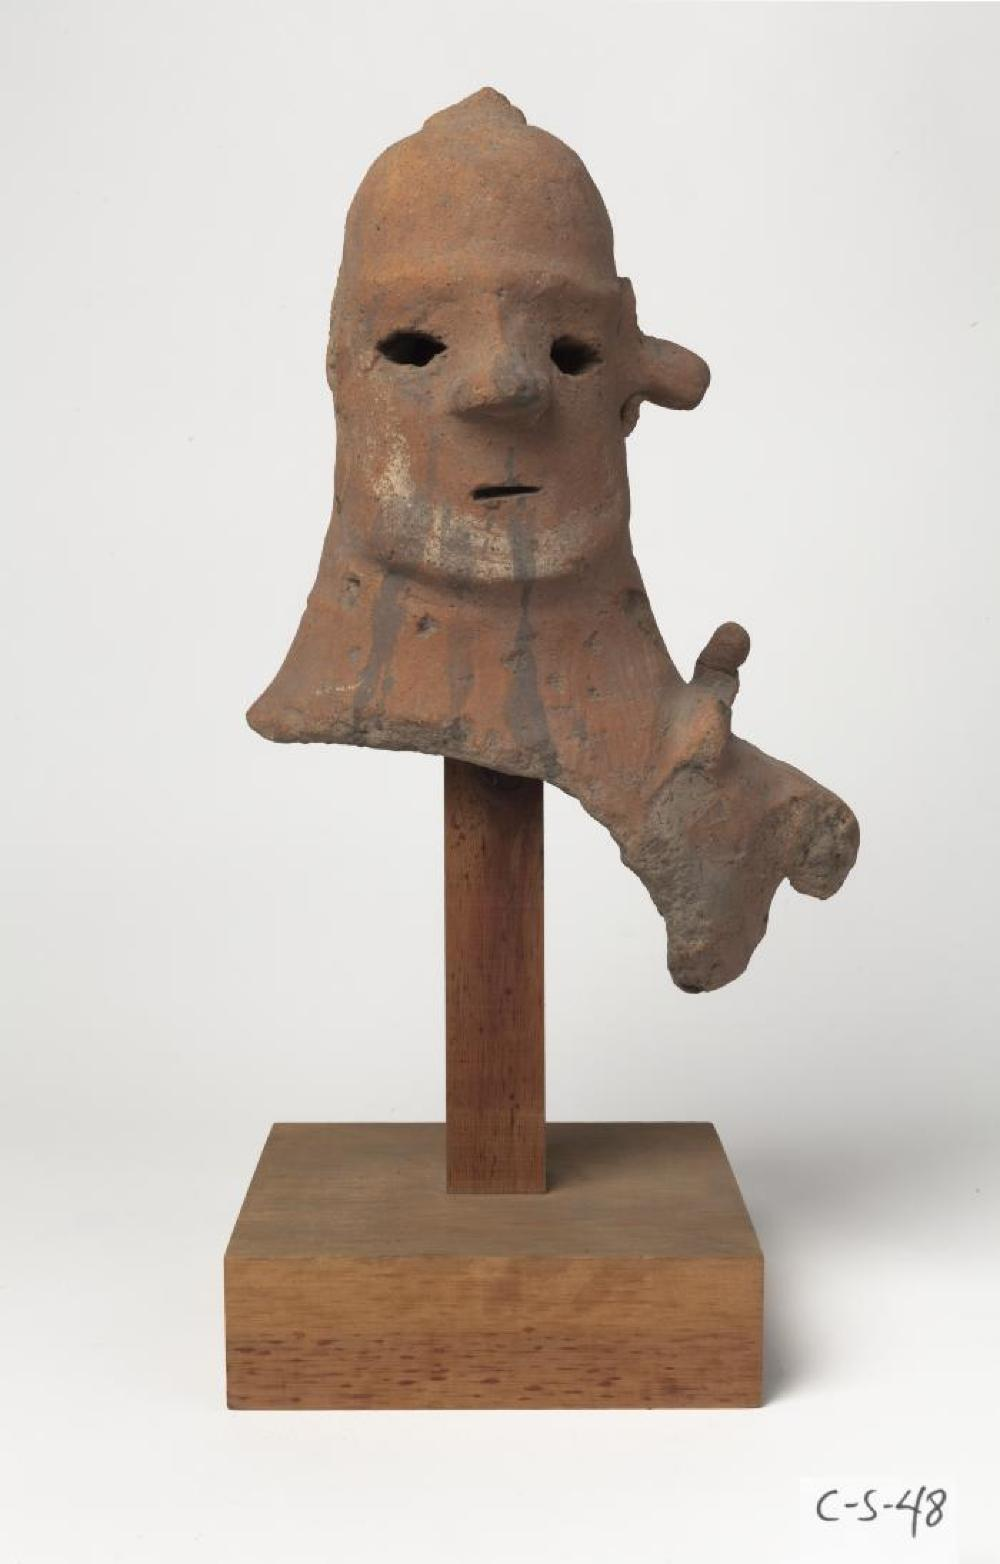 Japanese; Head of Haniwa Figure; Tumulus Period, 5th-6th century; Earthenware, wood base; 11 1/2 x 4 1/2 x 8 in., base 6 x 6 1/8 in.; Collection of Isamu Noguchi. (Study Collection; Collectibles, C-S-48)